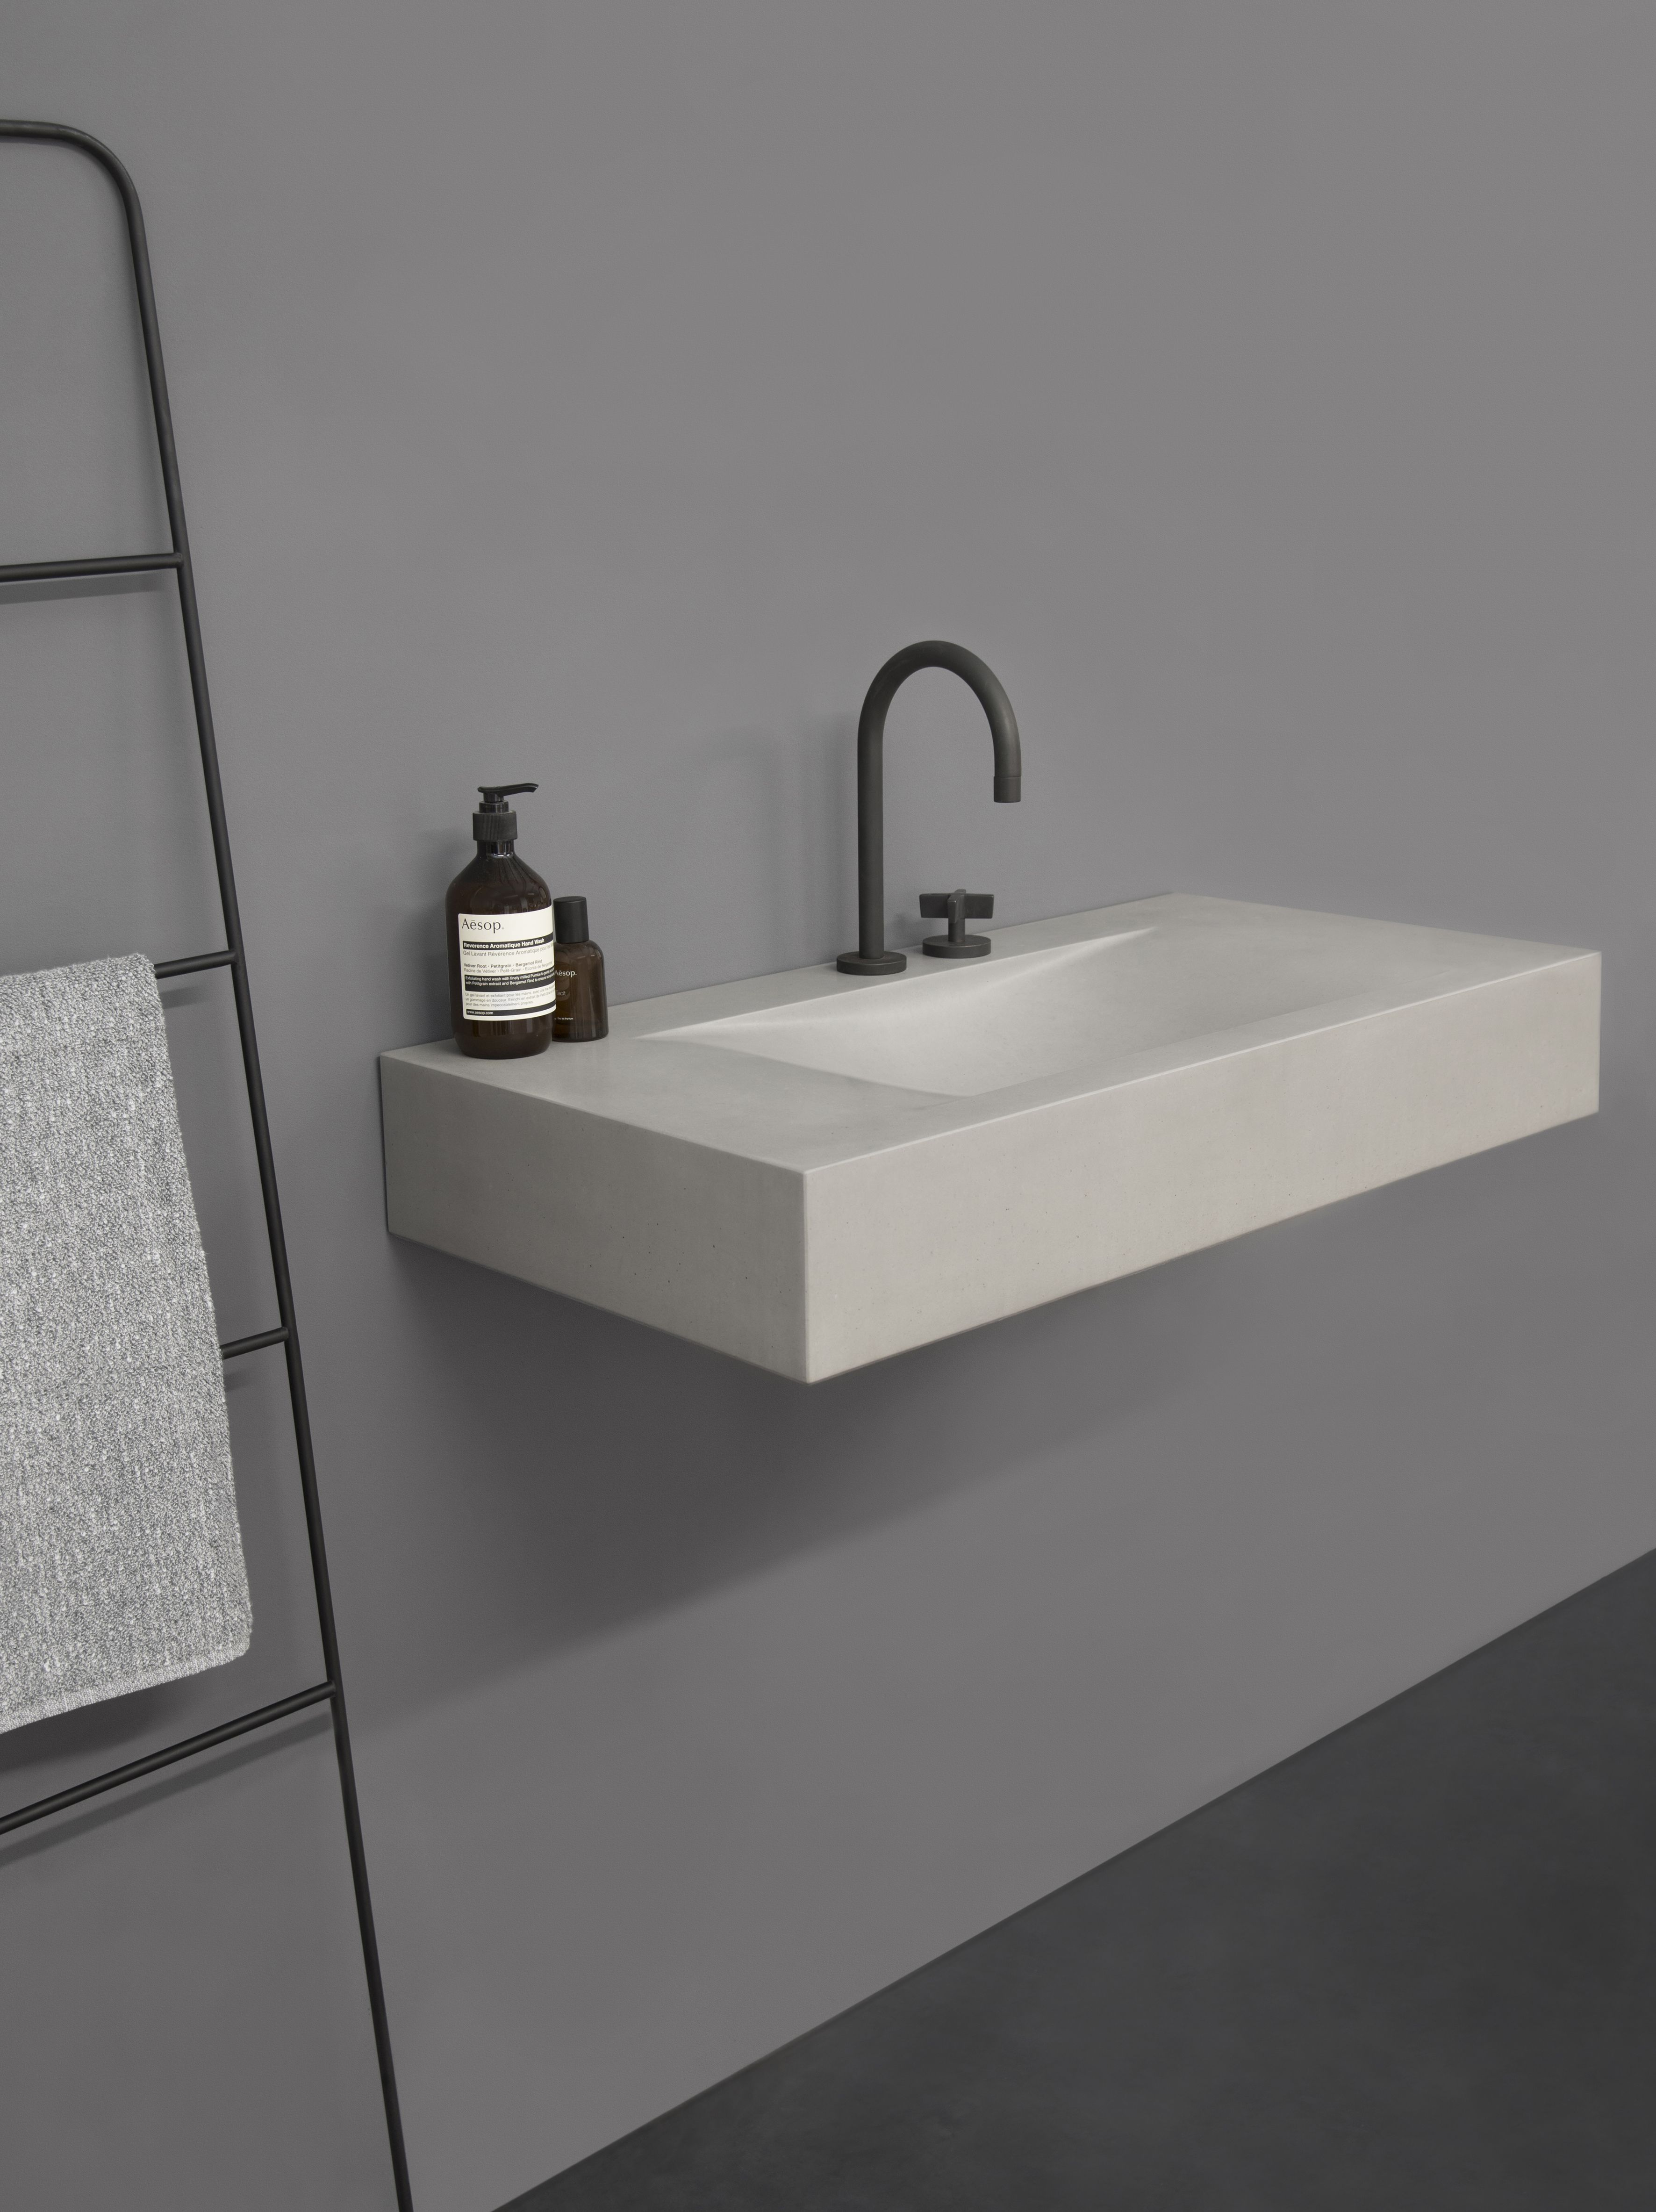 sculptural in presence, the sono basin by kast is defined by the